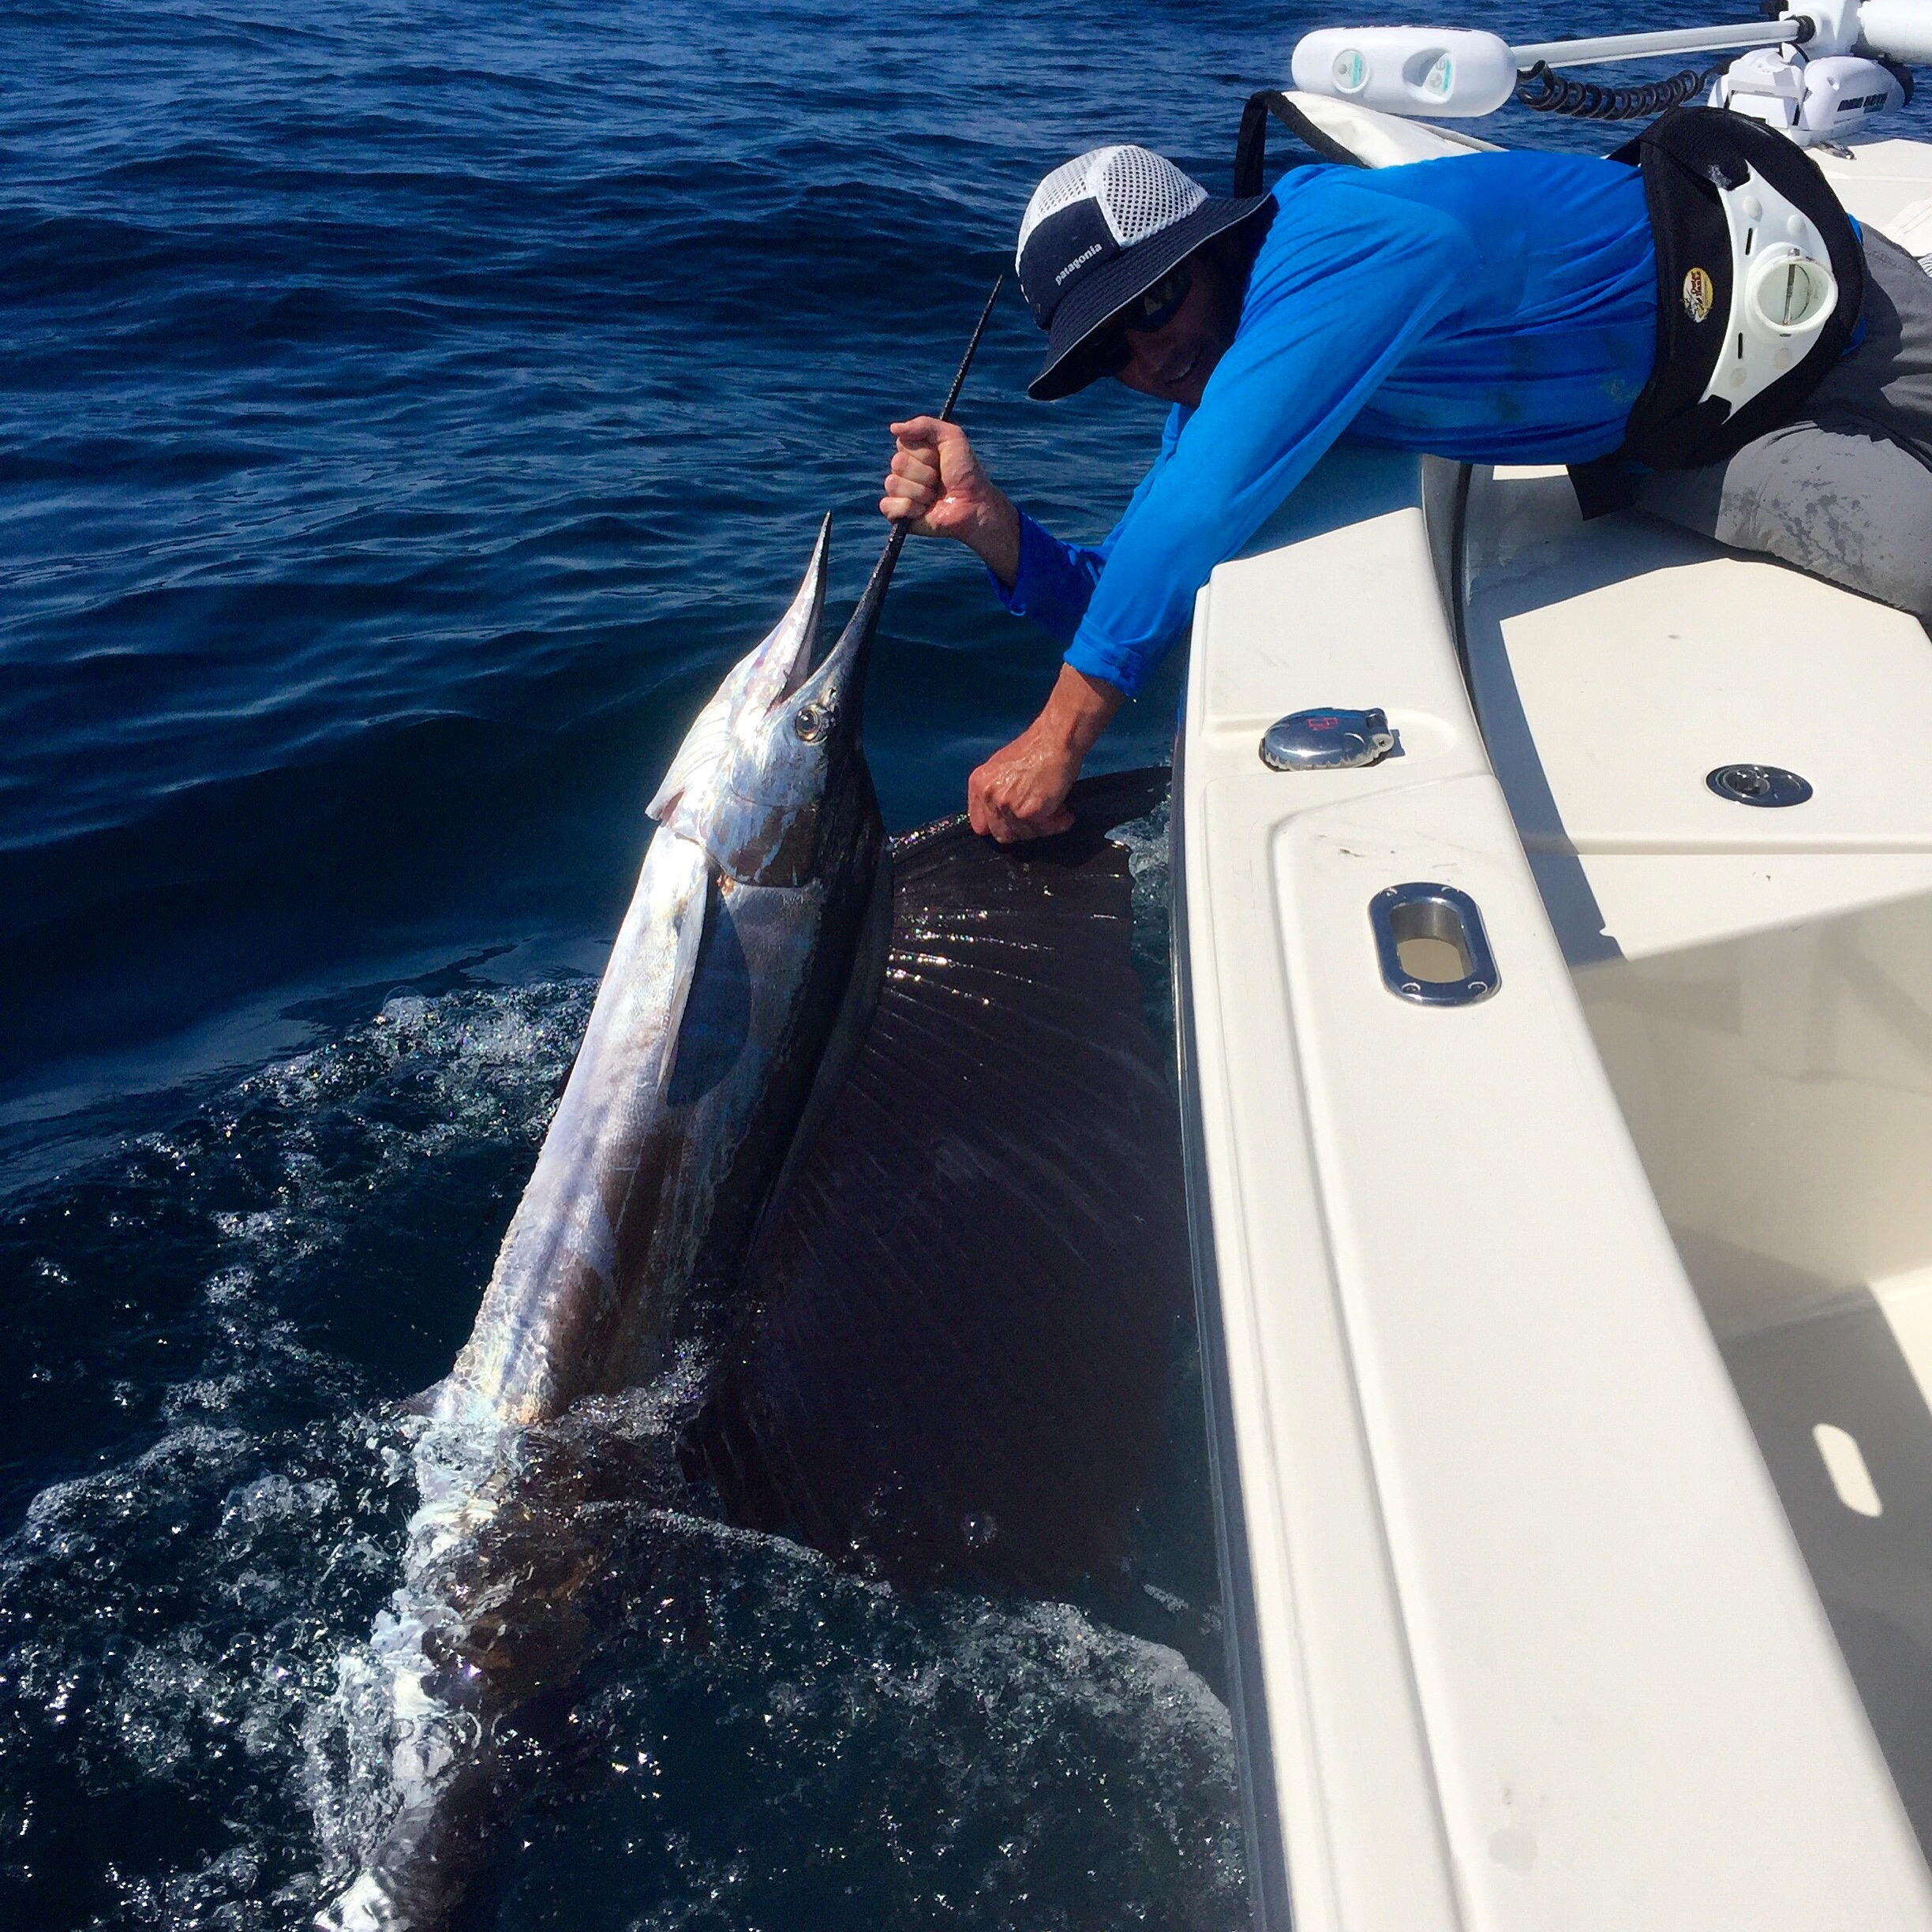 Man Releasing Sailfish Boat-side